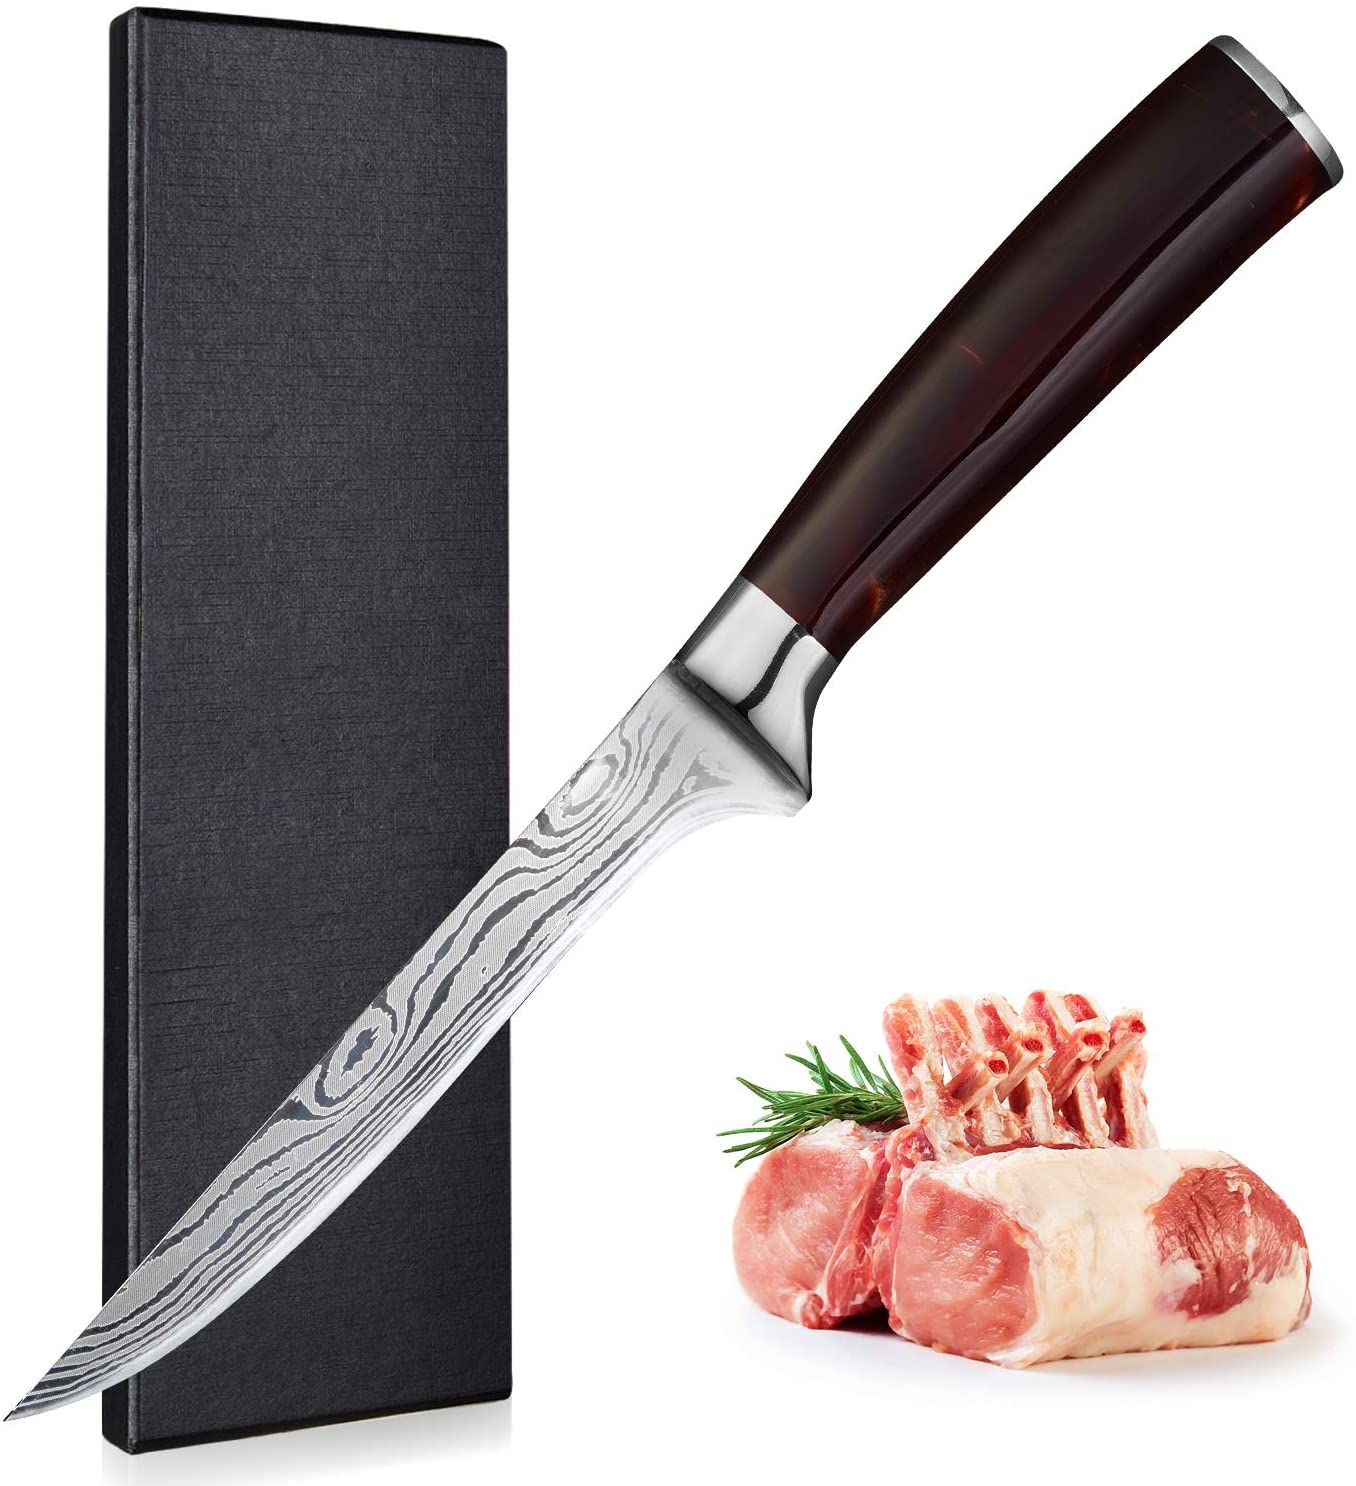 Boning knife - 6 Inch Flexible Fillet Knives 丨 German High Carbon Stainless Steel Kitchen Knife for deboning Meat Poultry Chicken, RESIN Handle with Gift Box